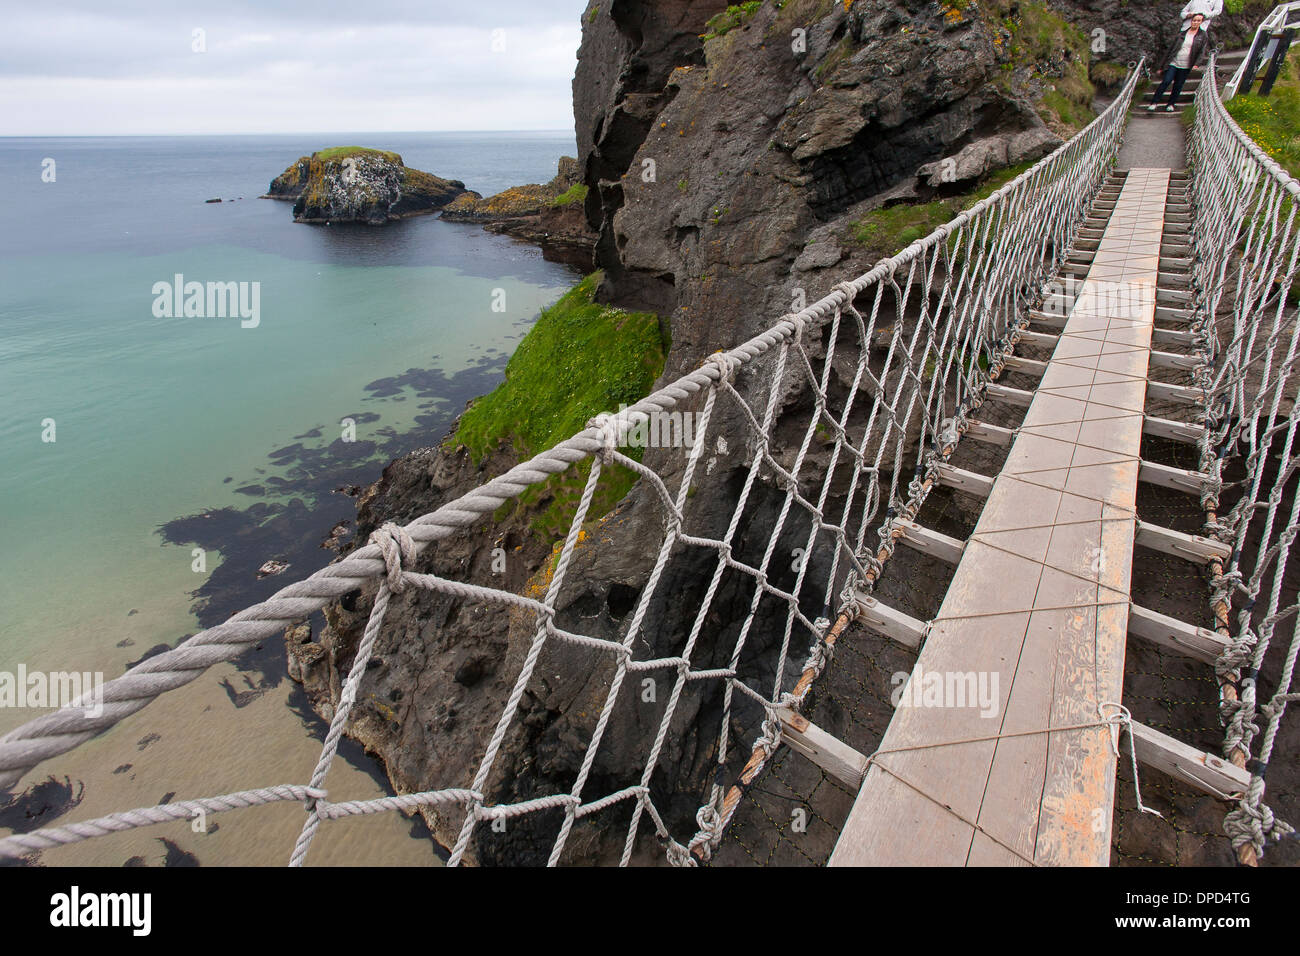 Half way across the Carrick-a-Rede rope bridge on the Antrim coast of Northern Ireland. The bridge connects carrickarede Island - Stock Image